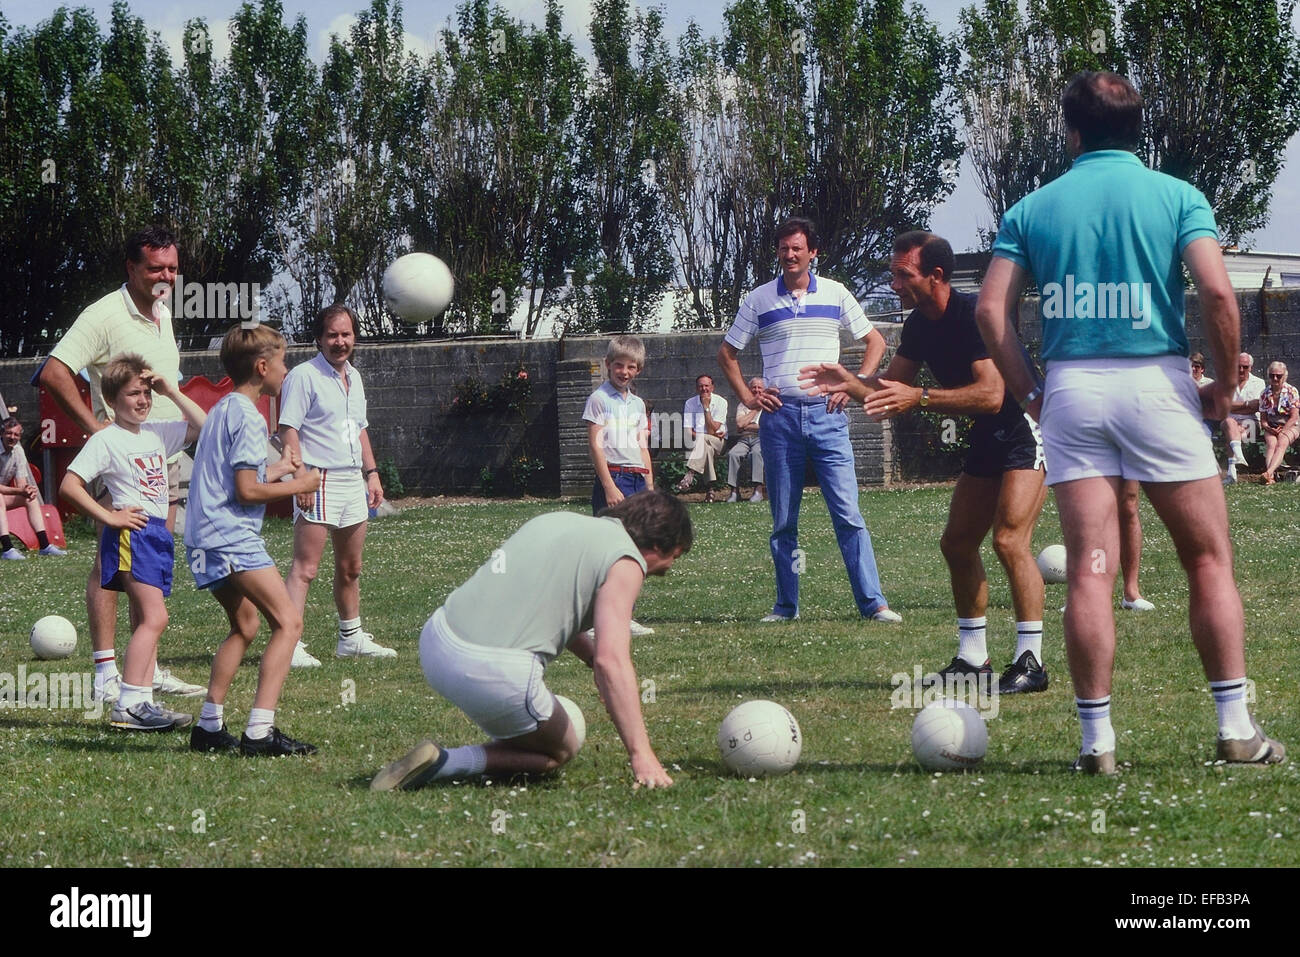 Ex Leeds United e Inghilterra il calciatore Paolo Reaney calcio coaching a Pontins Holiday camp. In Inghilterra. Immagini Stock